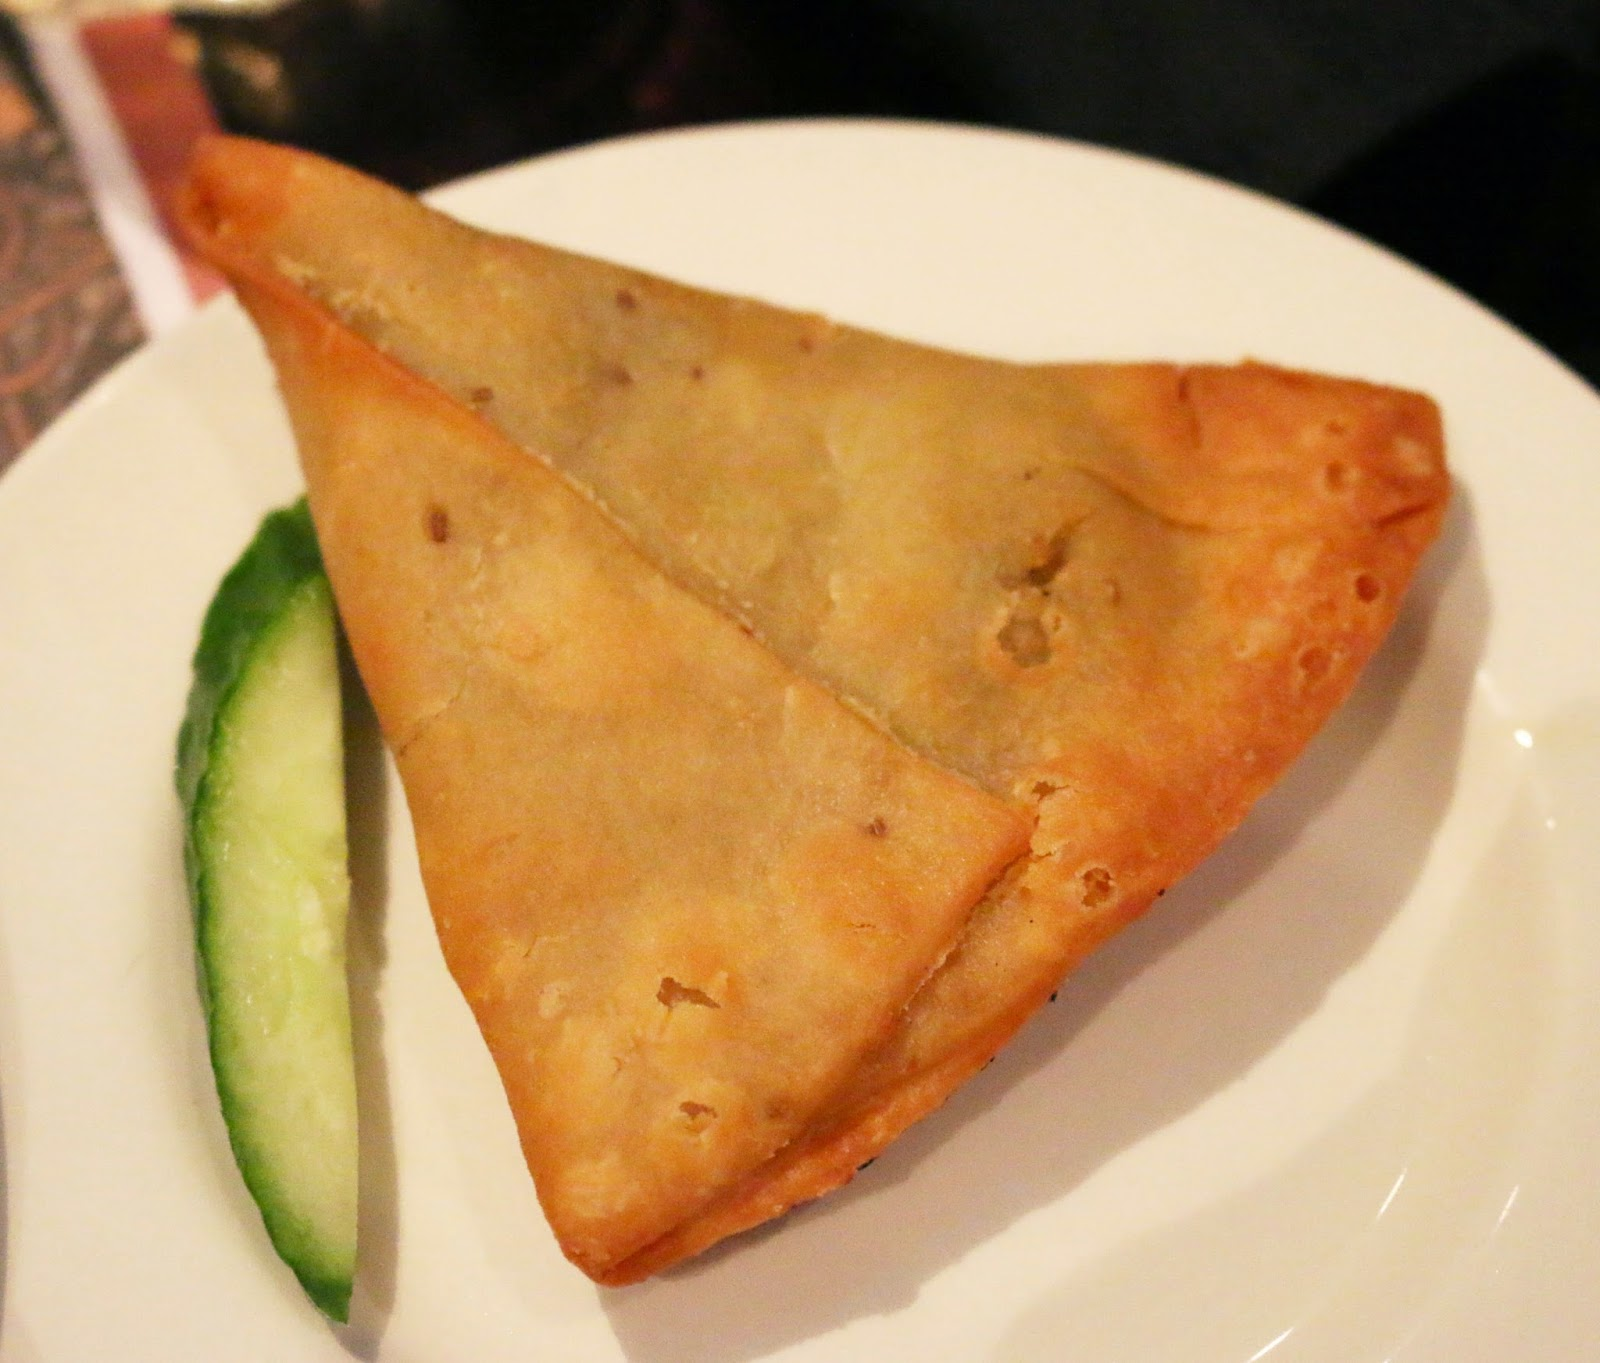 Tayyabs - Vegetable Samosa